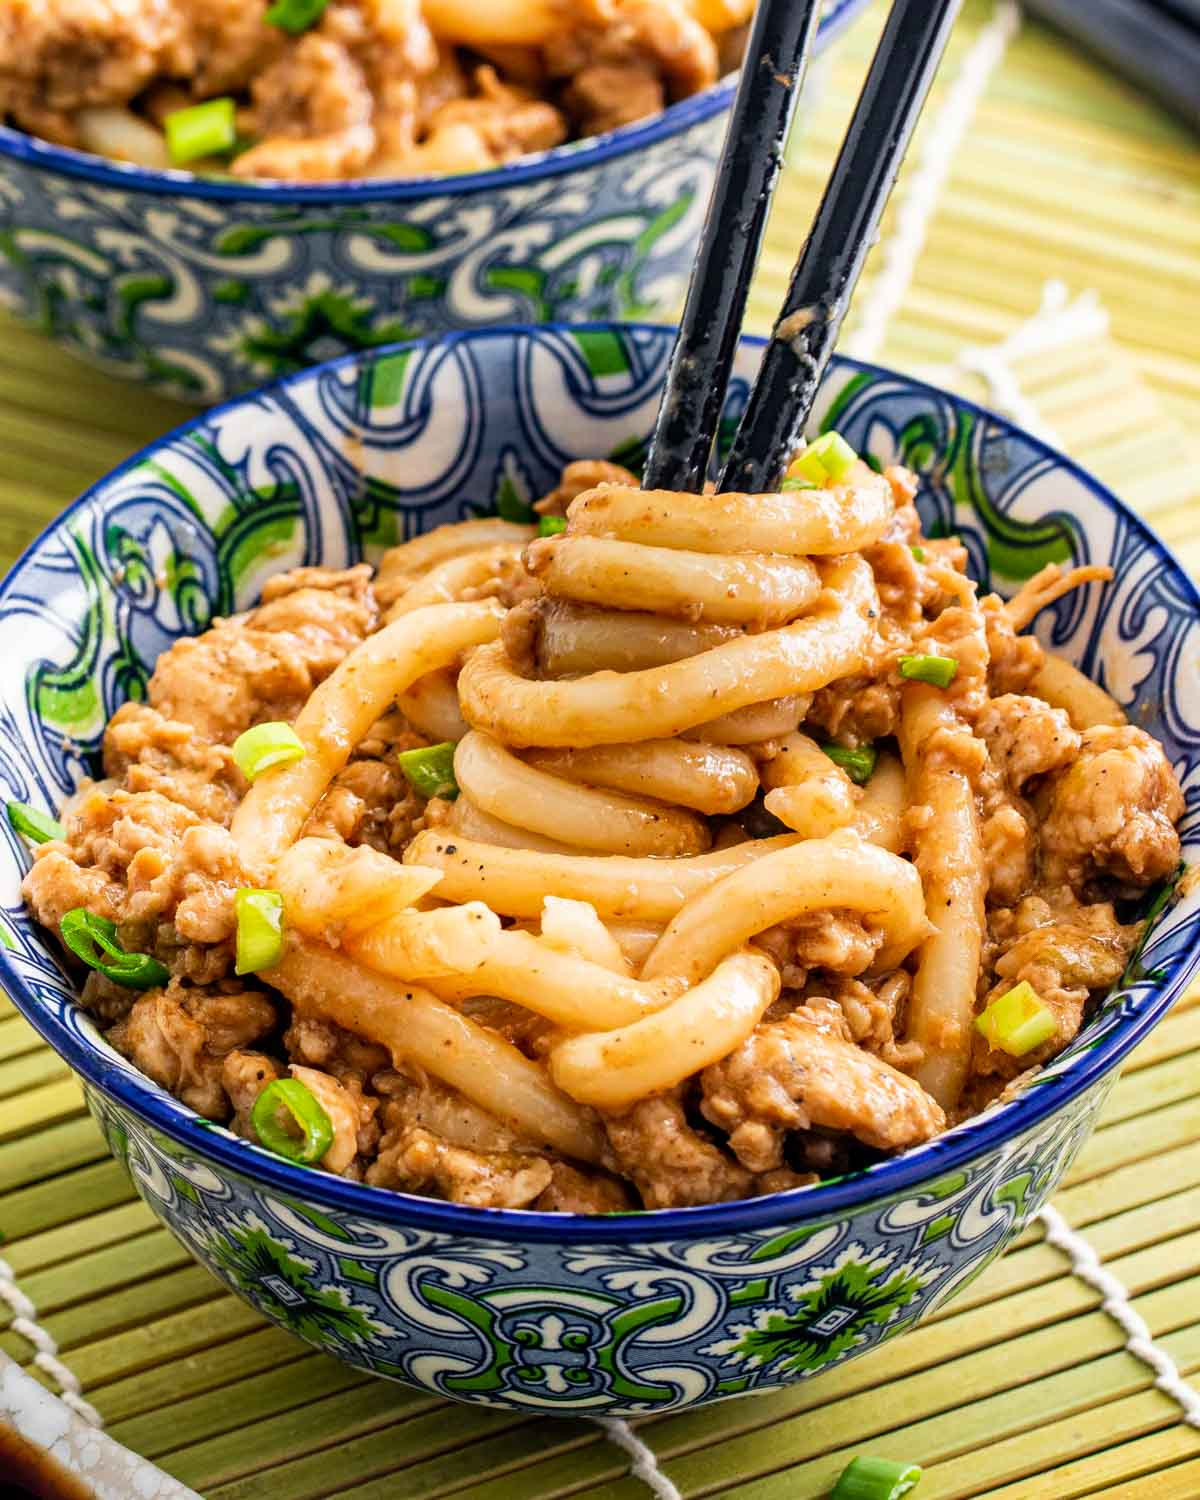 quick chicken peanut noodles in an asian bowl with chopsticks twirling some noodles.